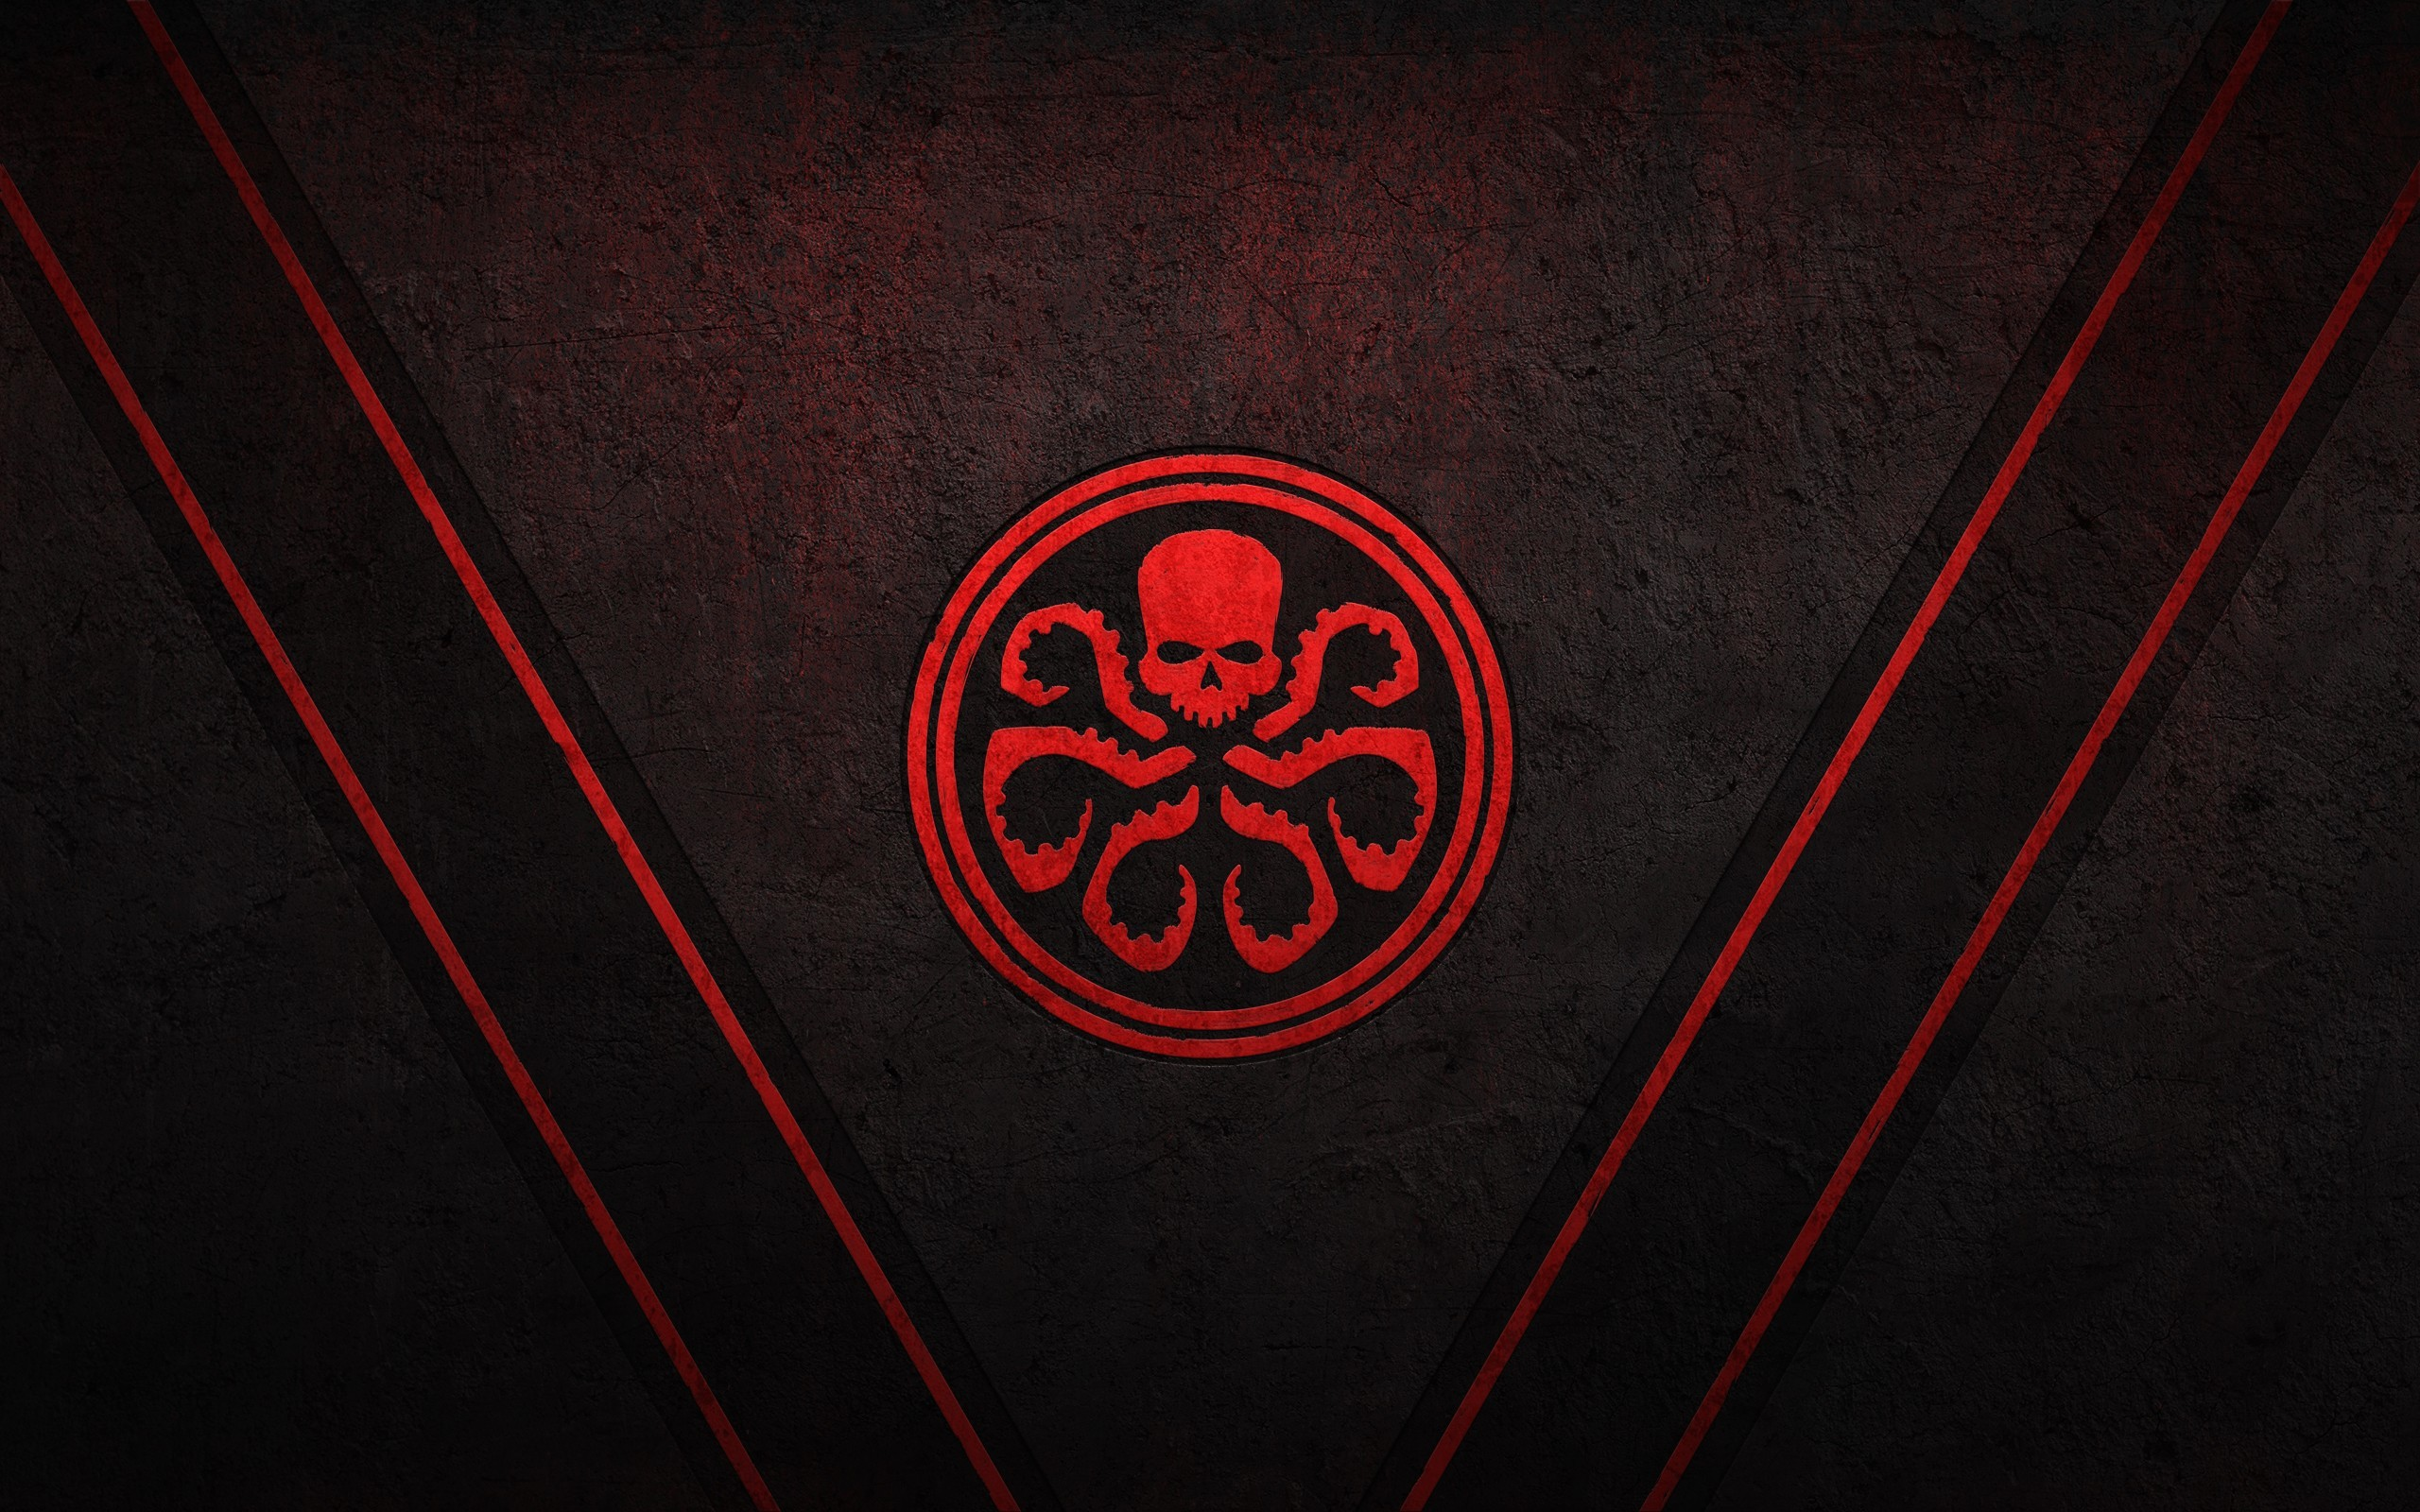 wallpaper.wiki-Cthulhu-Picture-Free-Download-PIC-WPE005269